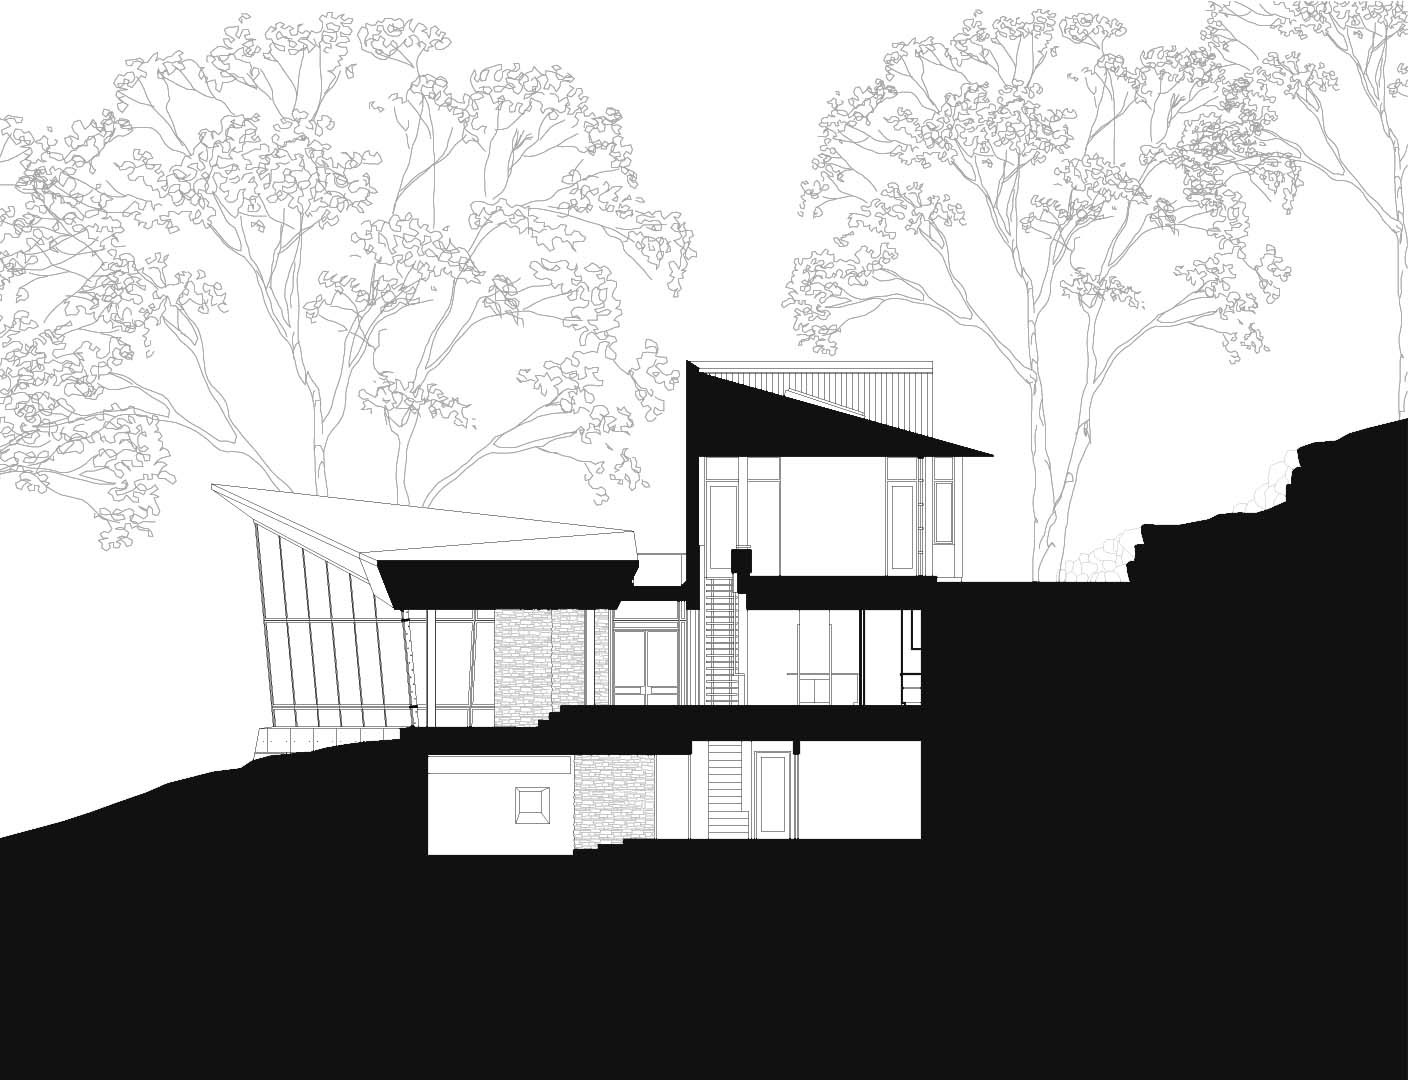 012_canyon_house.jpg